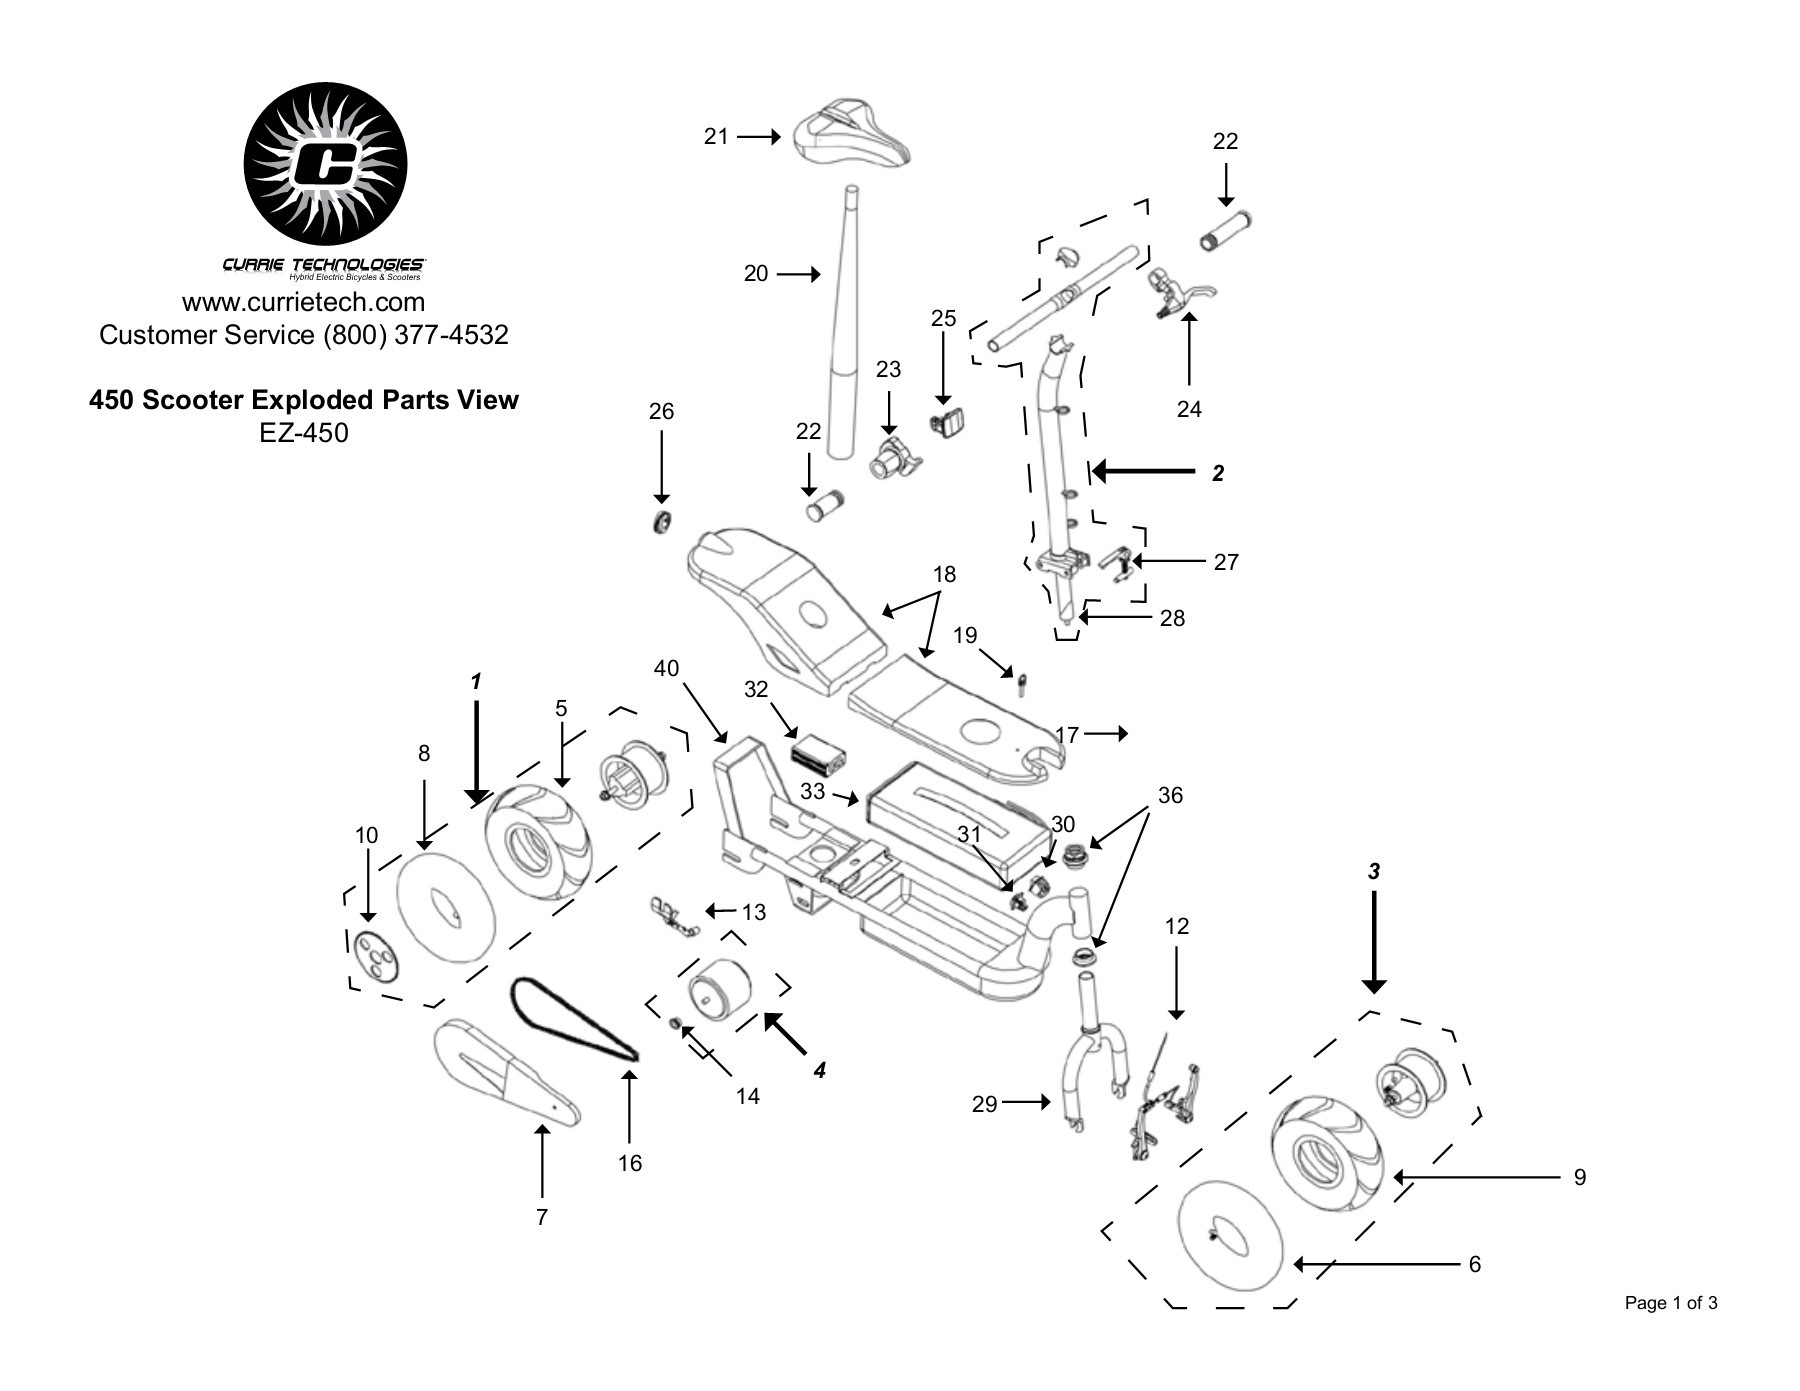 hight resolution of 450 scooter exploded parts view ez 450 currie tech pages 1 3 text version fliphtml5